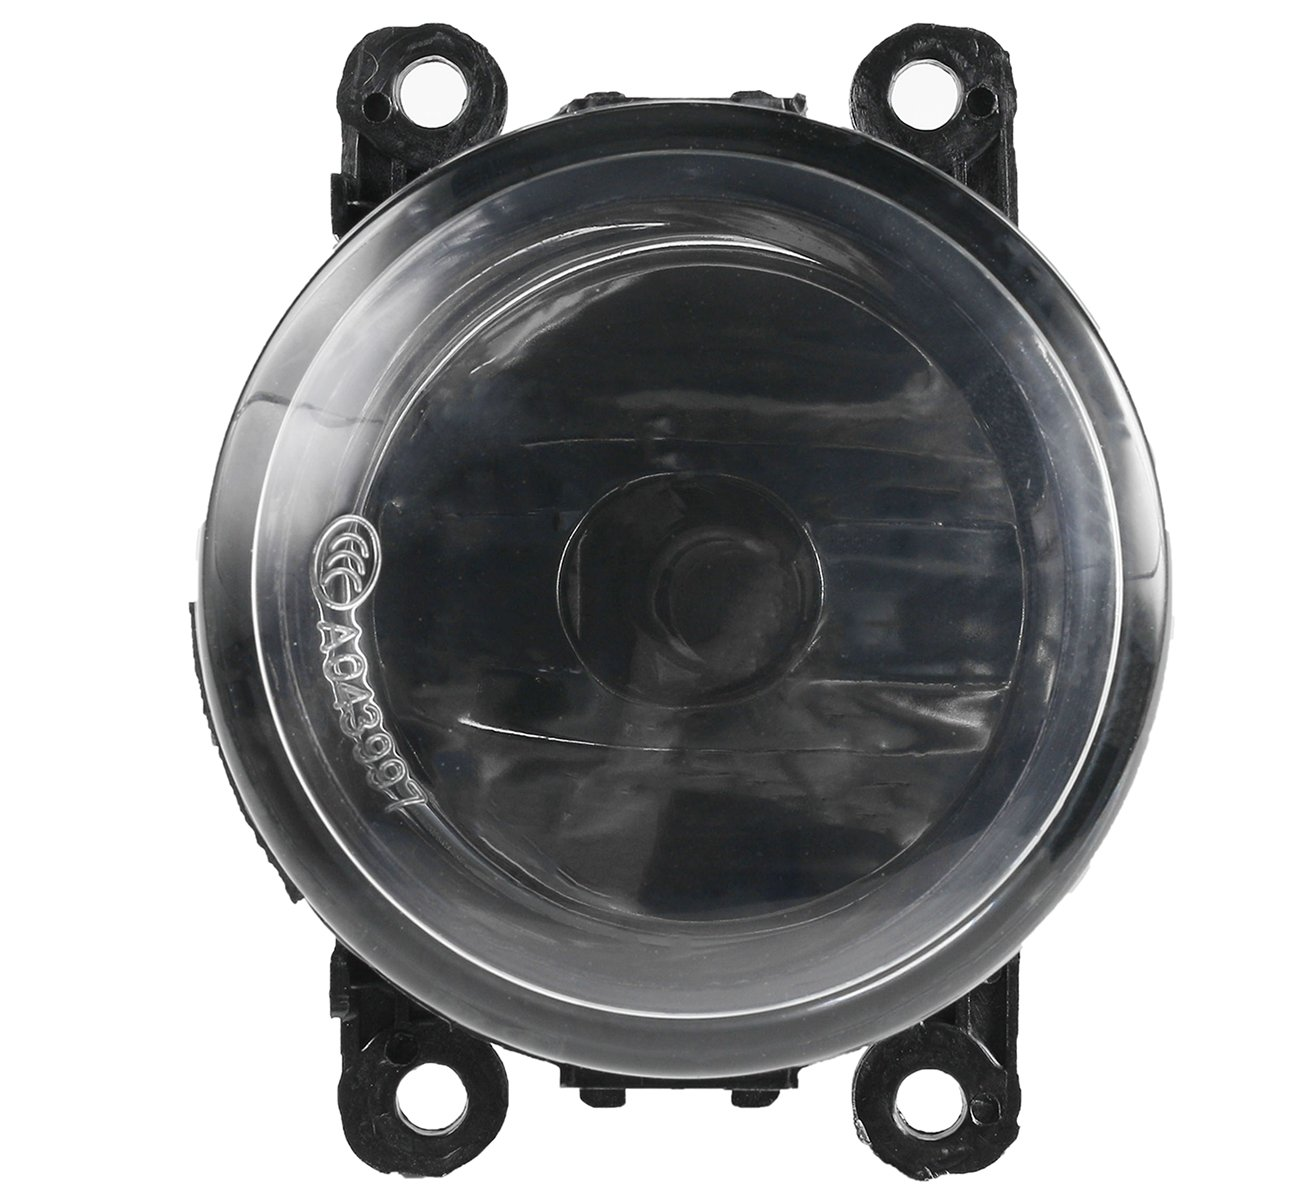 AUTOPA Front Left//Right Fog Light Lamp 55W with H11 bulb for Acura Nissan Ford Honda Jaguar Lincoln Nissan Subaru